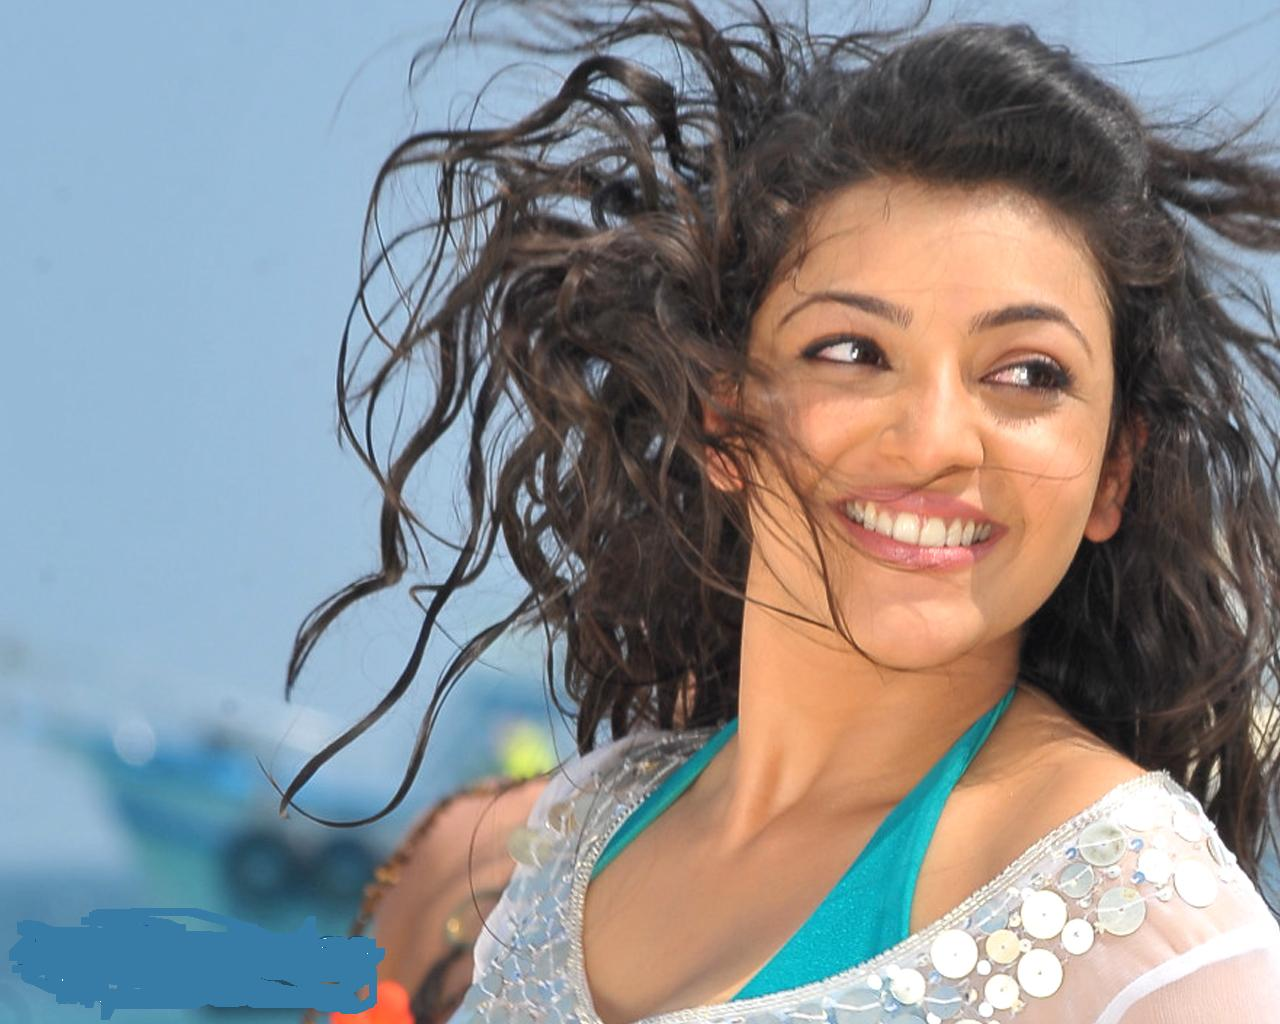 Kajal Agarwal Beautiful: FREE HDWALLPAPERS: KAJAL AGARWAL BEAUTIFUL SMILE